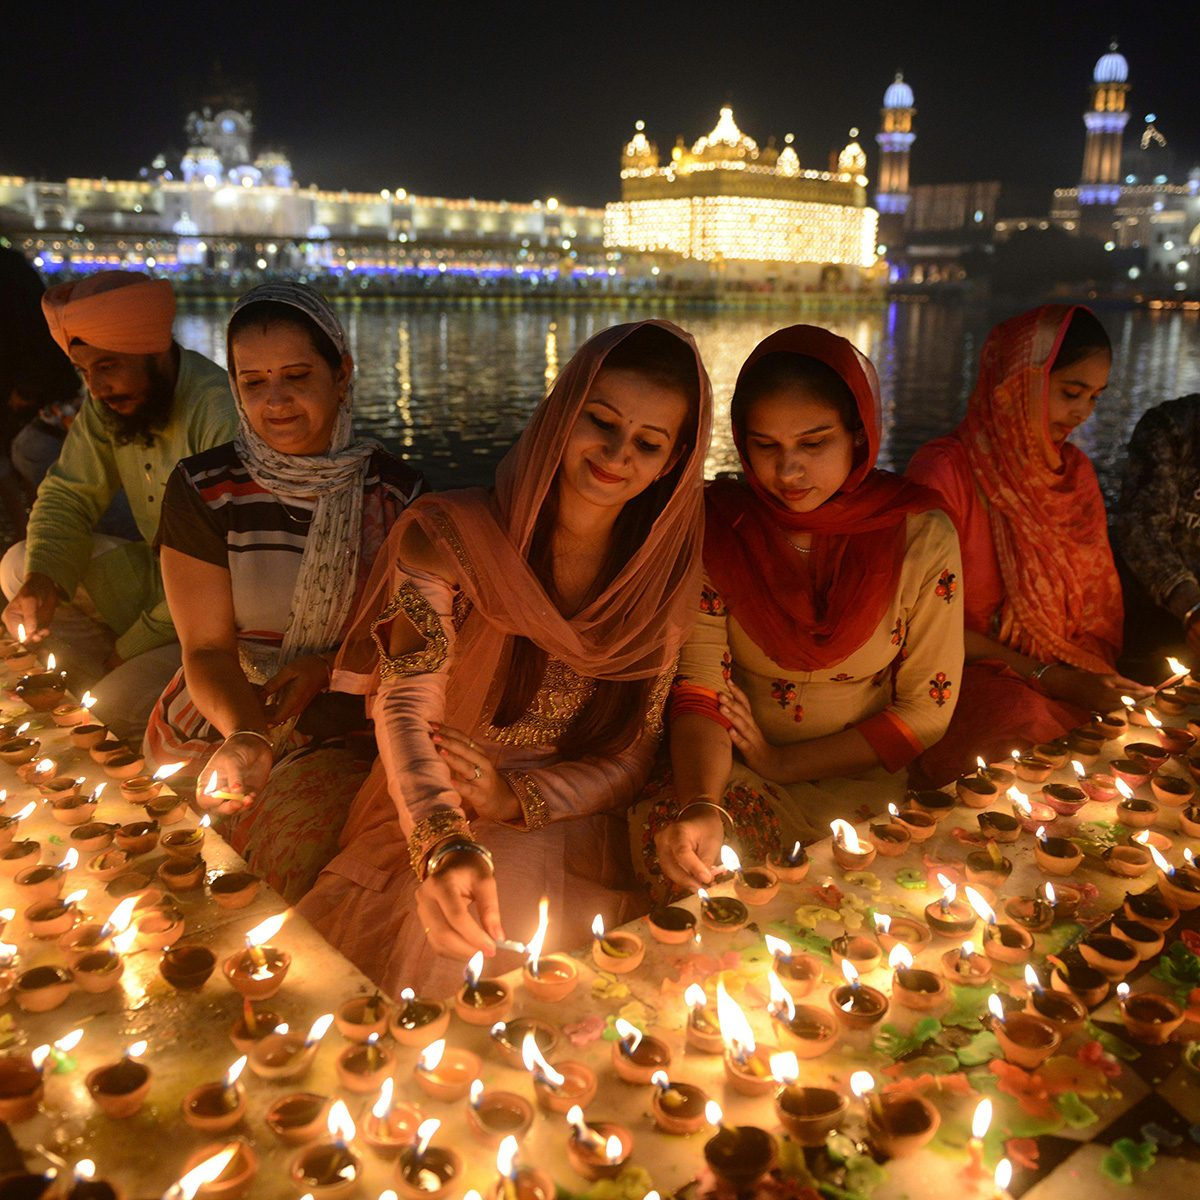 TOPSHOT - Indian Sikh devotees light lights diyas (earthen lamps) during Bandi Chhor Divas or Diwali at the Golden Temple in Amritsar on November 7, 2018. - Sikhs celebrate 'Bandi Chhor Divas', also on the same day as the Hindu festival of Diwali, to mark the historic return of the sixth Guru, Guru Hargobind. (Photo by NARINDER NANU / AFP) (Photo credit should read NARINDER NANU/AFP via Getty Images)